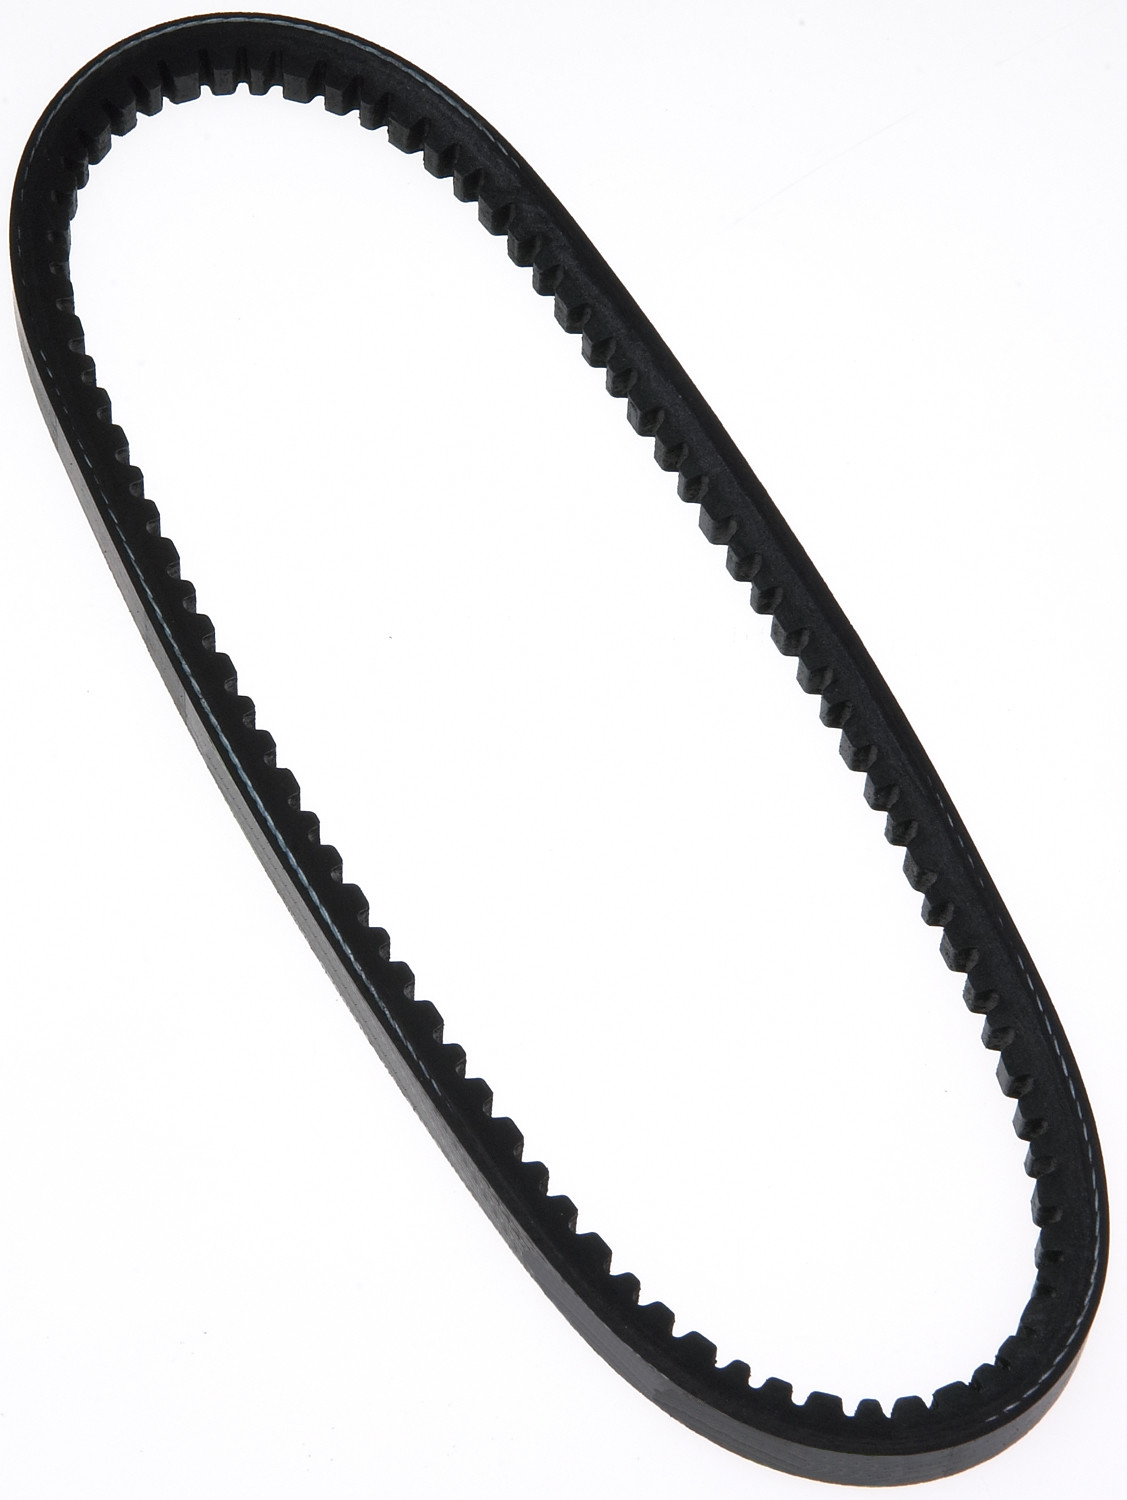 ROADMAX - High Capacity V-belt(standard) - RMX 17355AP